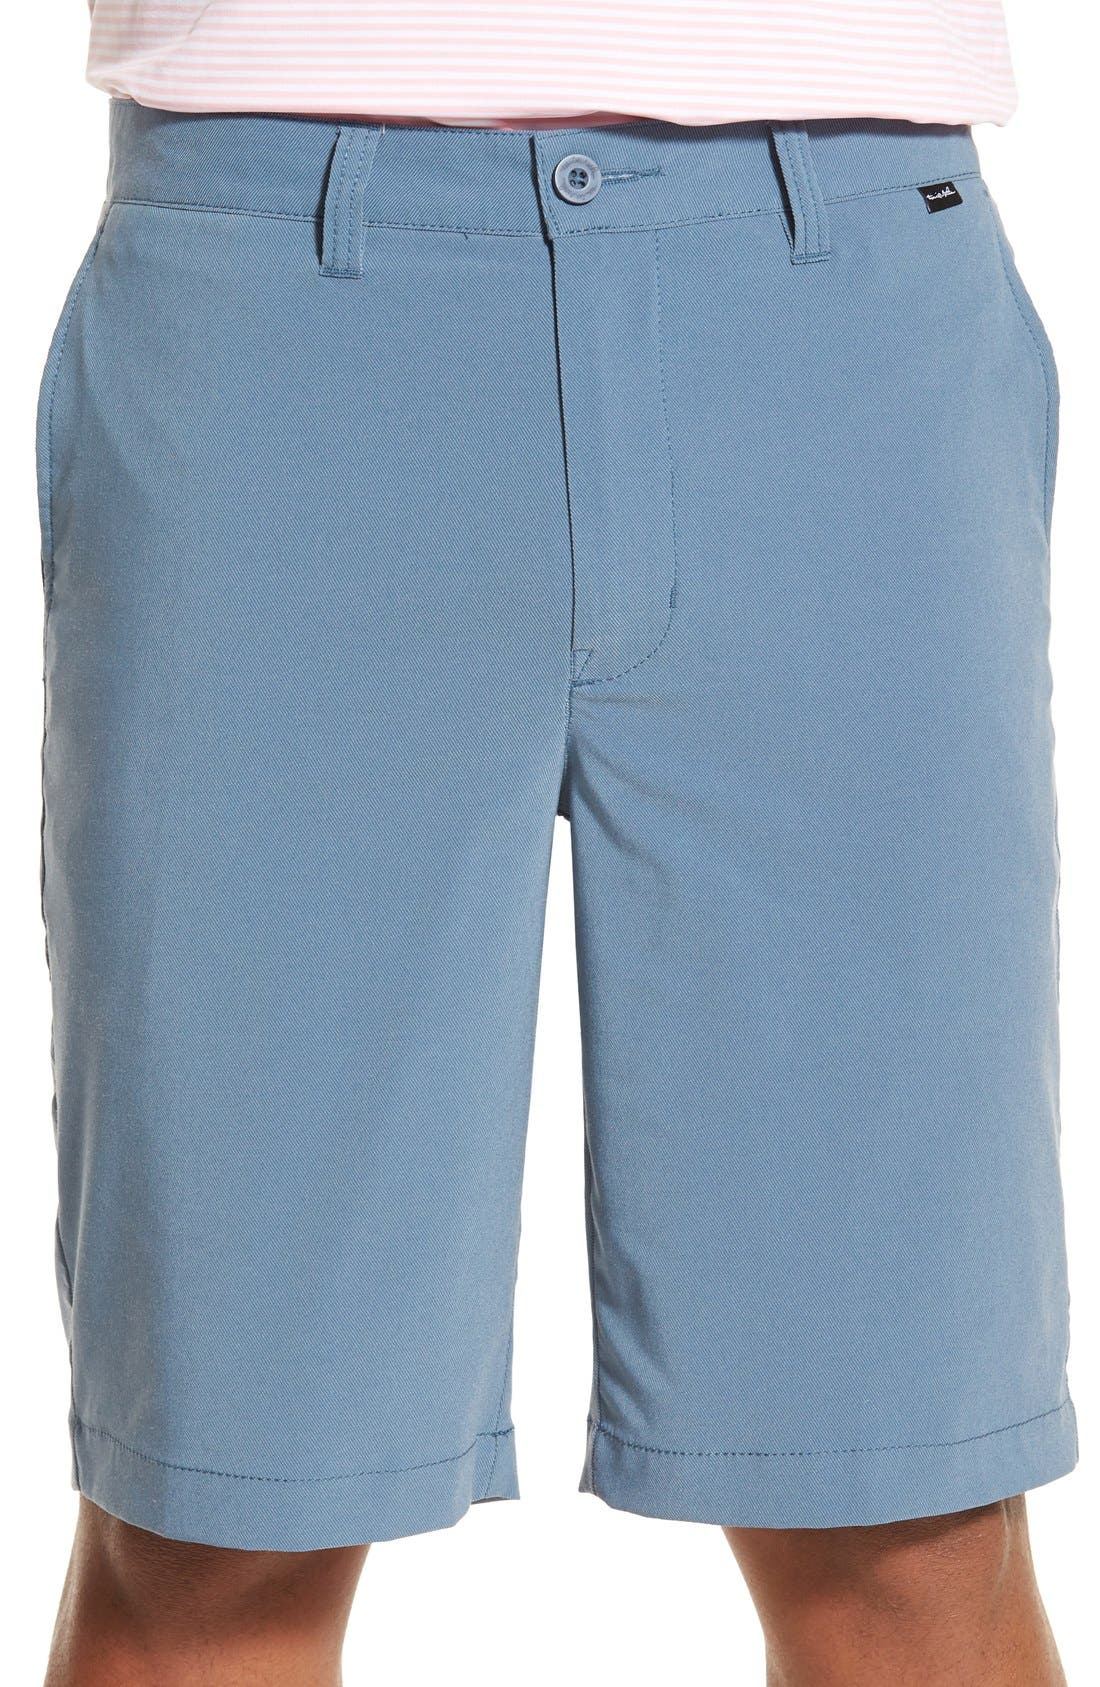 'Hefner' Stretch Golf Shorts,                             Main thumbnail 9, color,